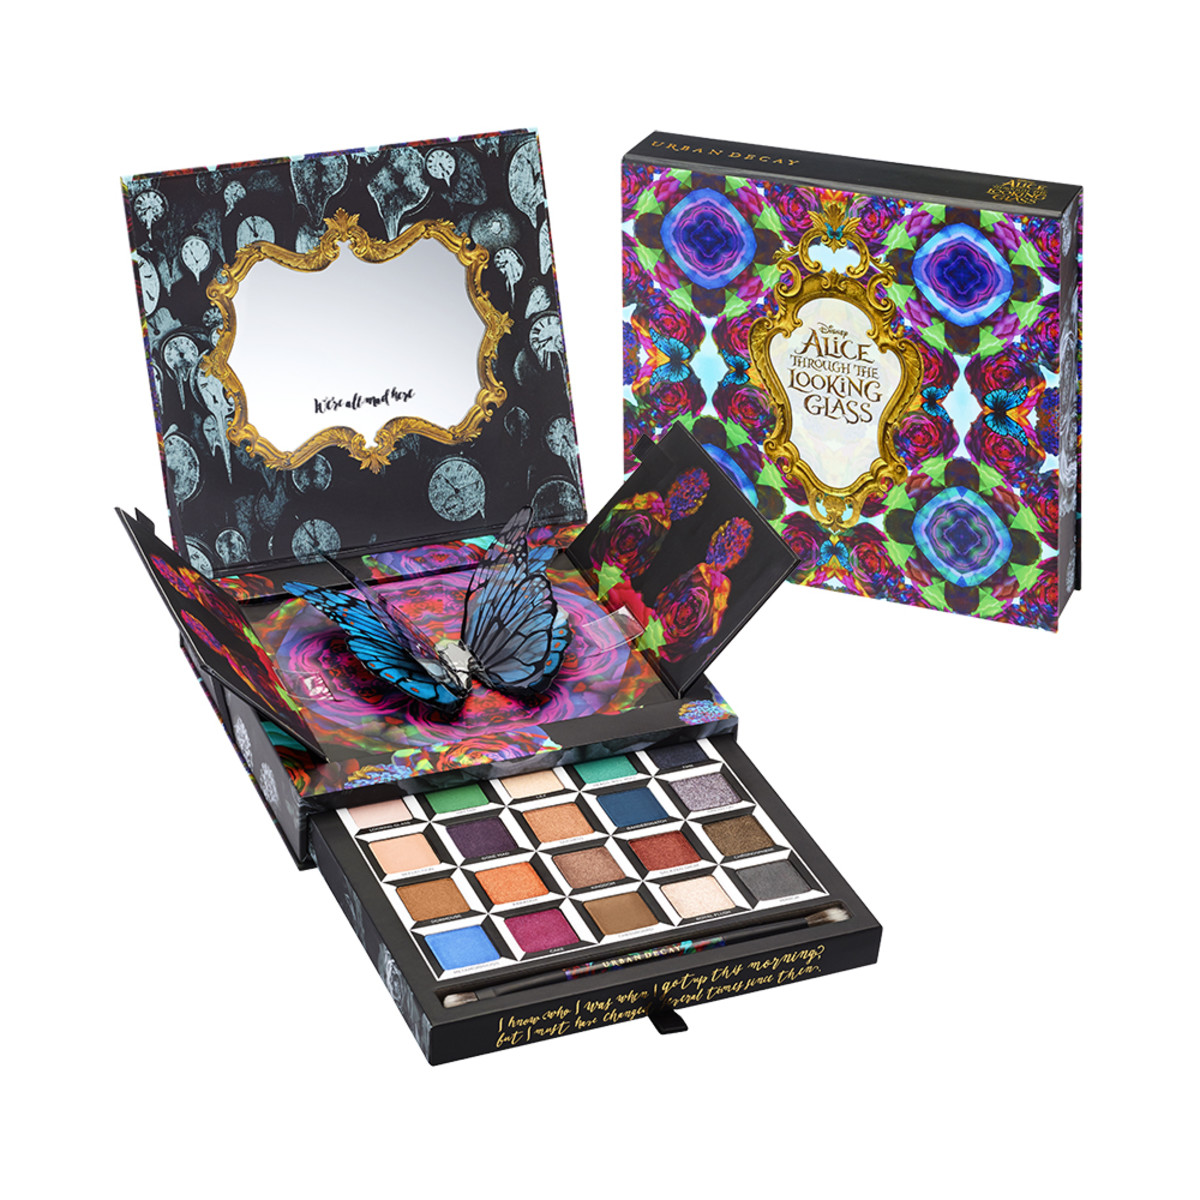 The Urban Decay x Alice Through The Looking Glass Eyeshadow Palette, $60, available at Sephora.